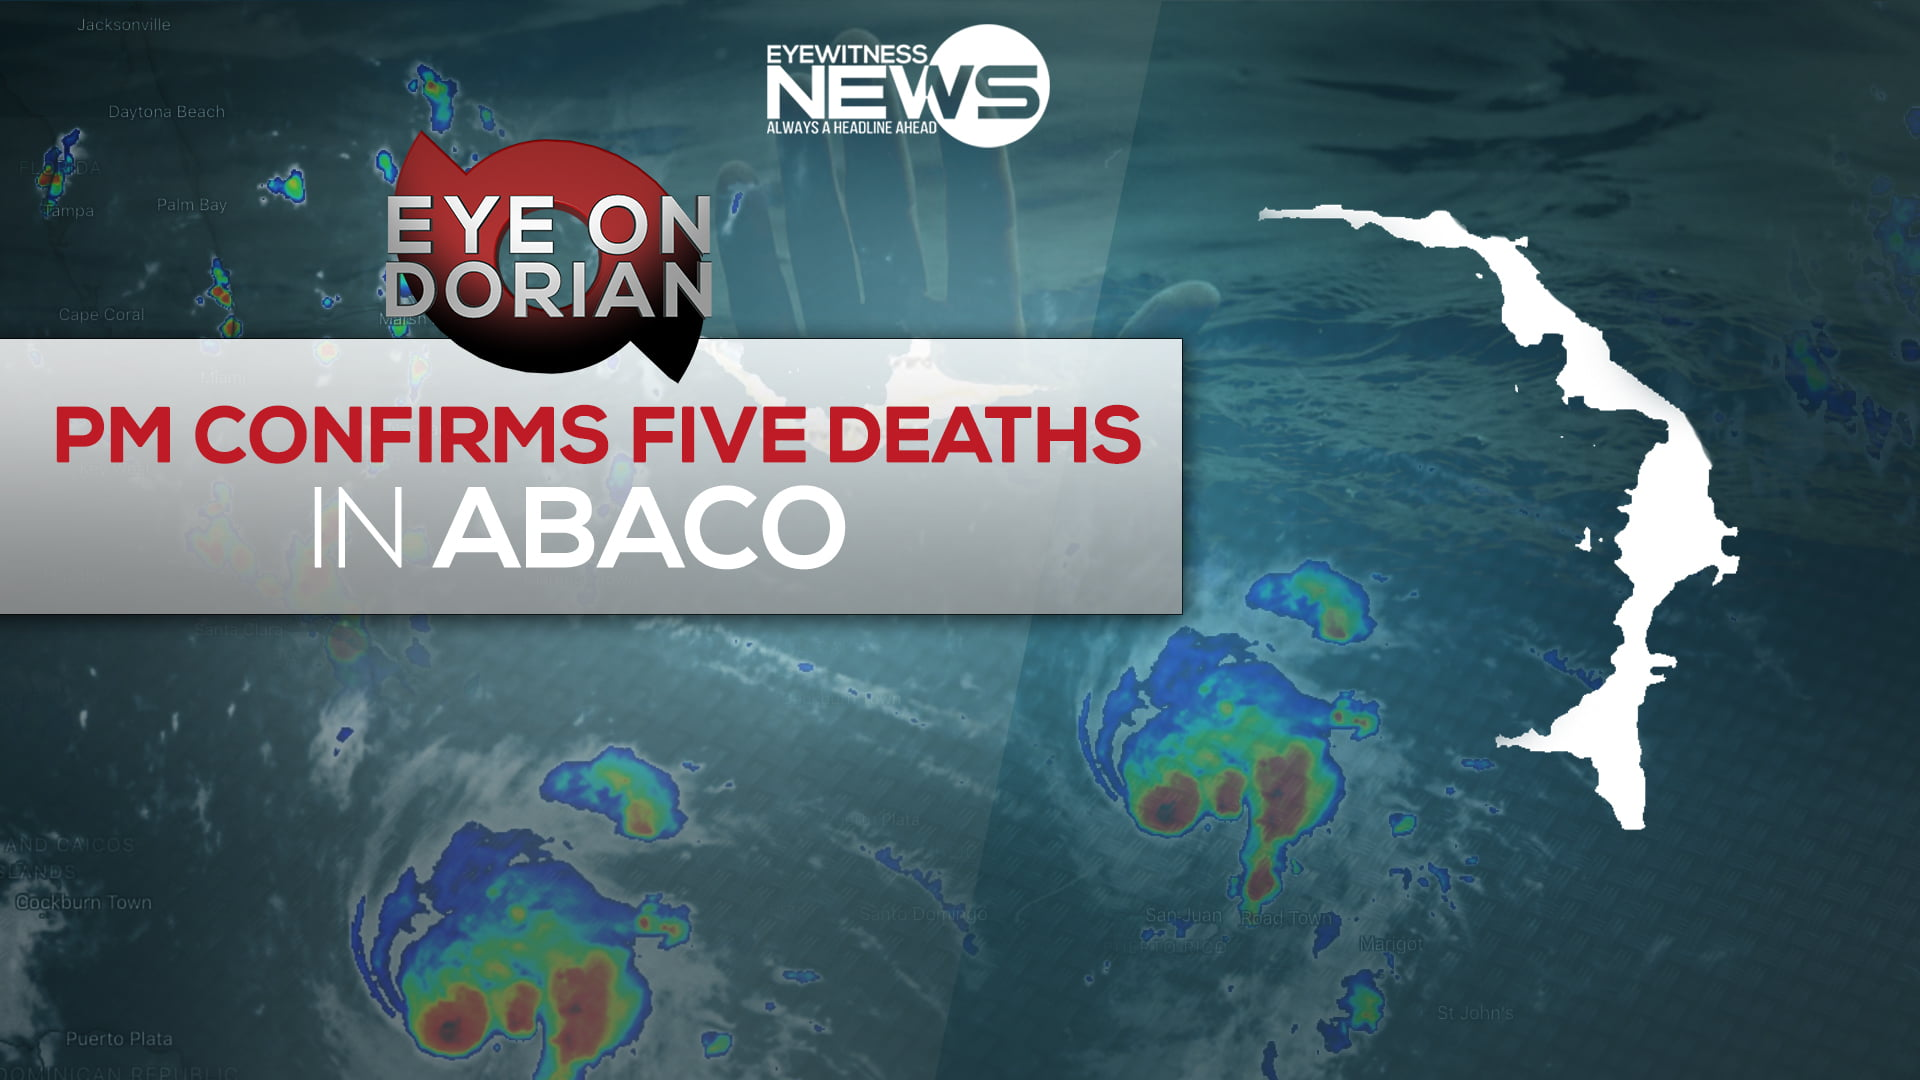 PM confirms five deaths in Abaco